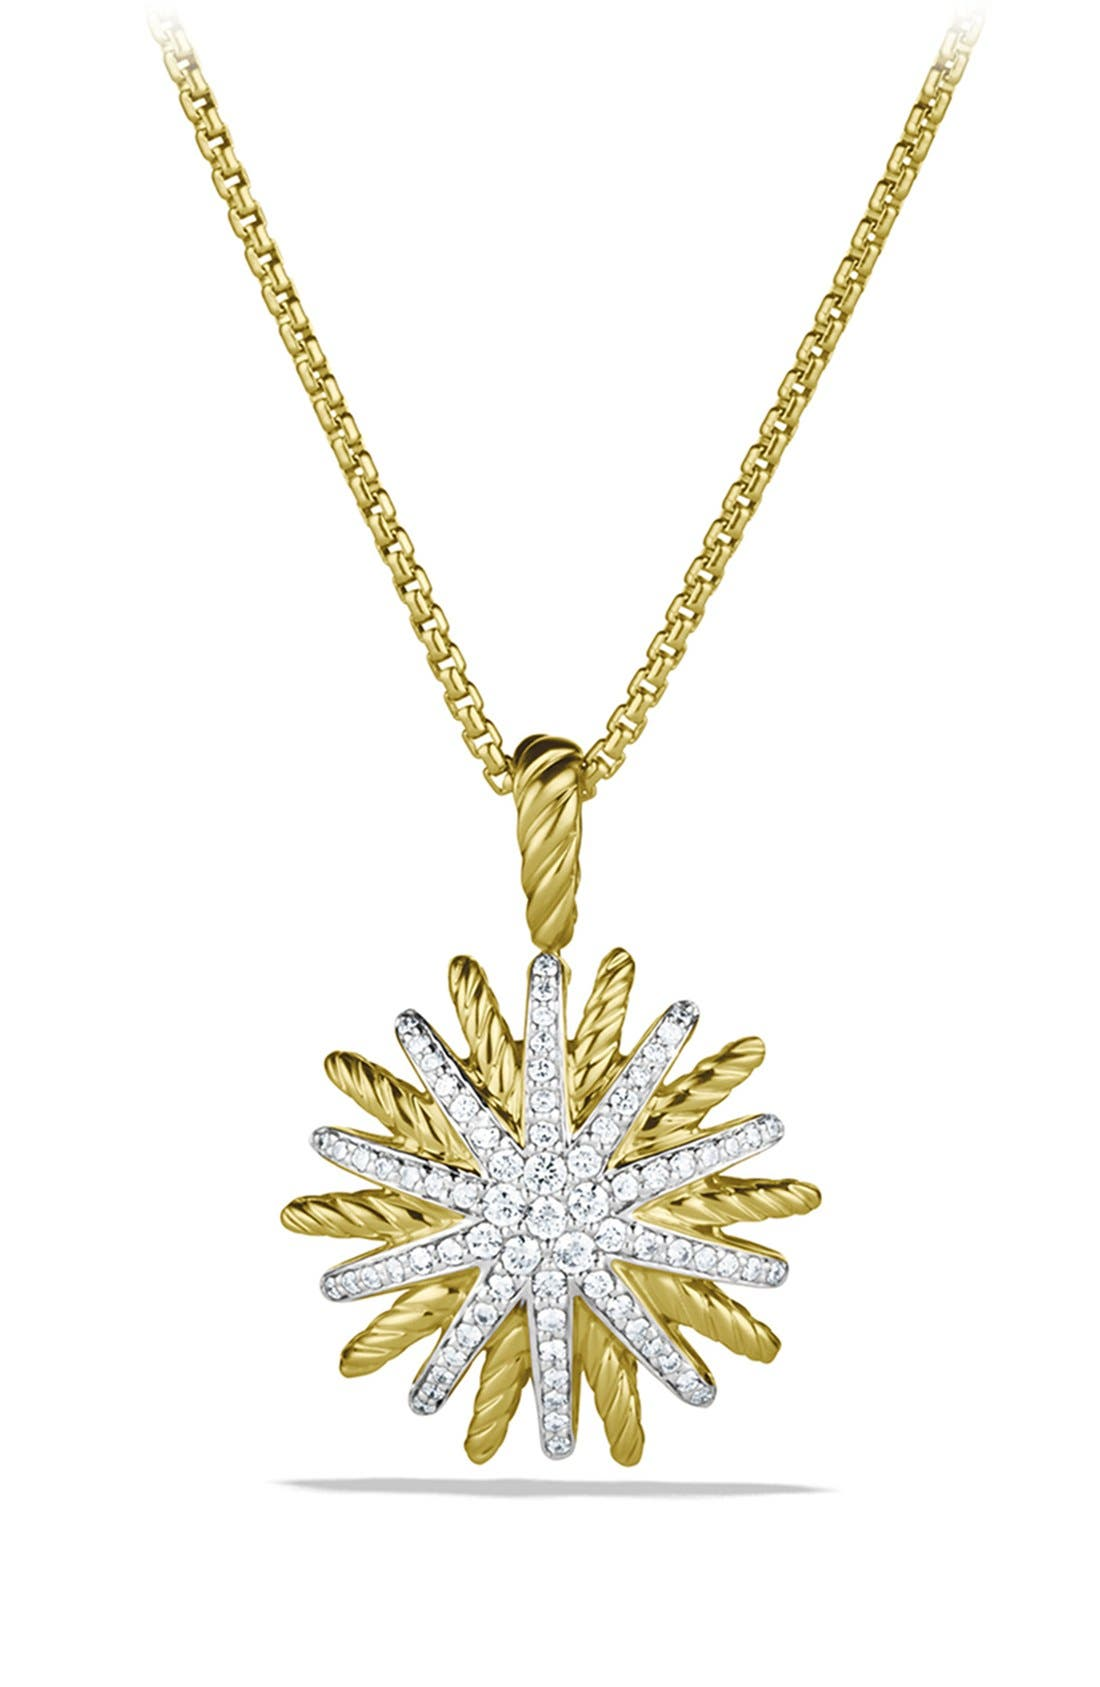 'Starburst' Small Pendant with Diamonds in Gold on Chain,                         Main,                         color, Diamond